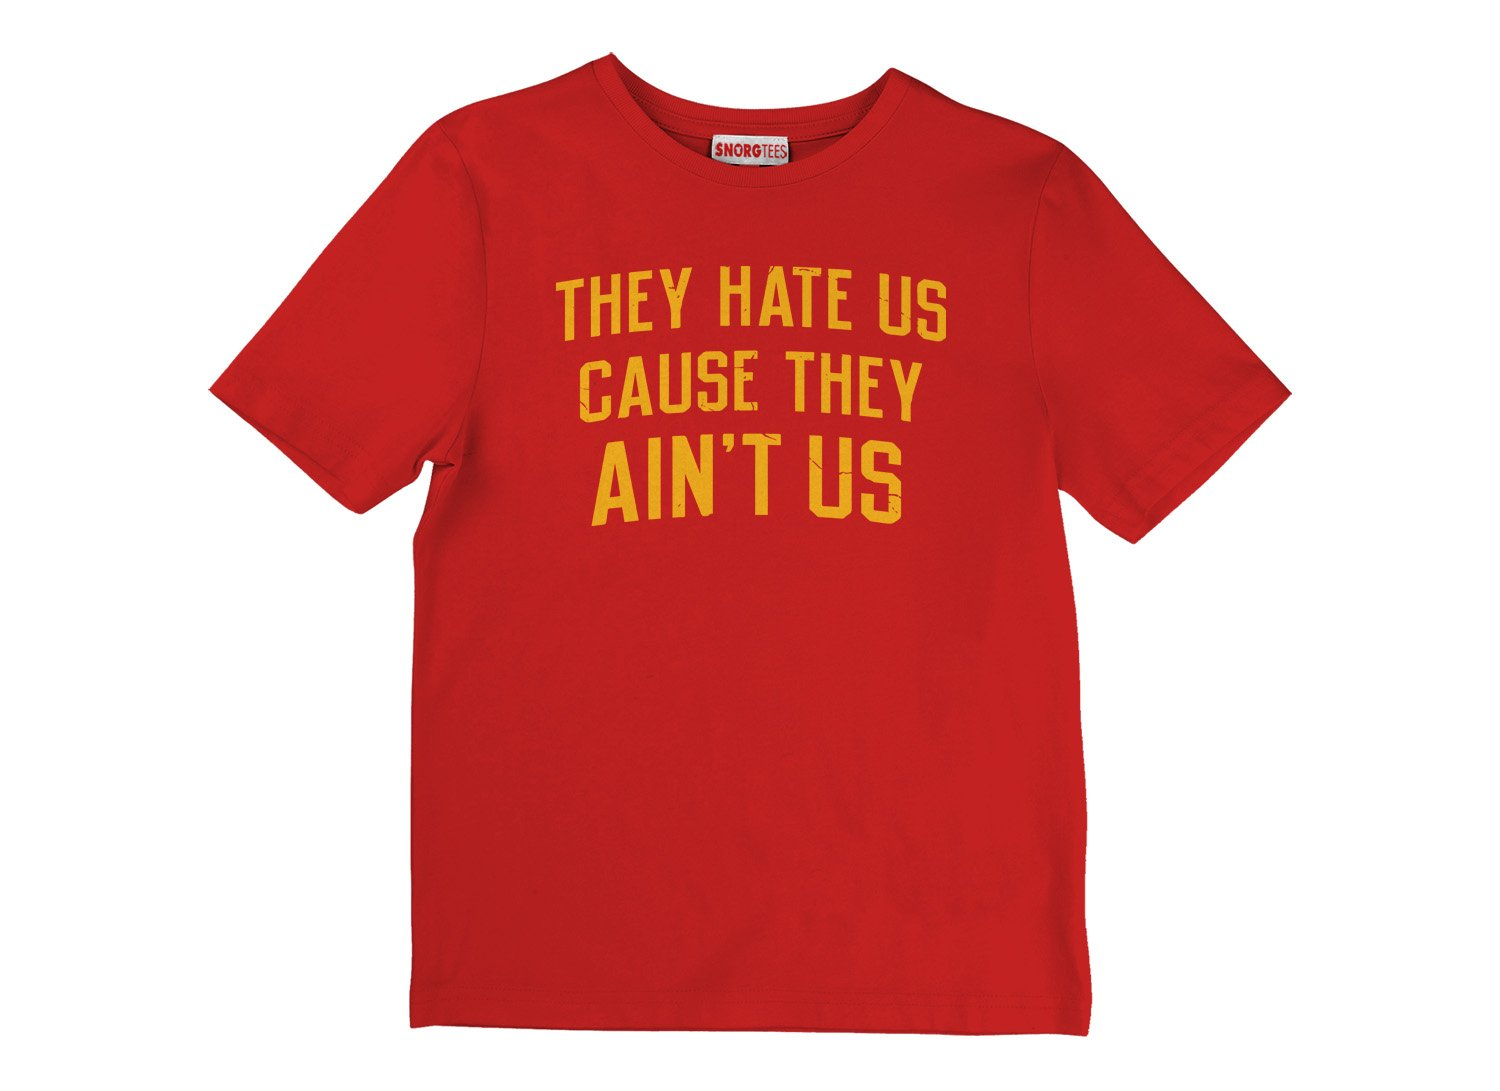 They Hate Us Cause They Ain't Us on Kids T-Shirt